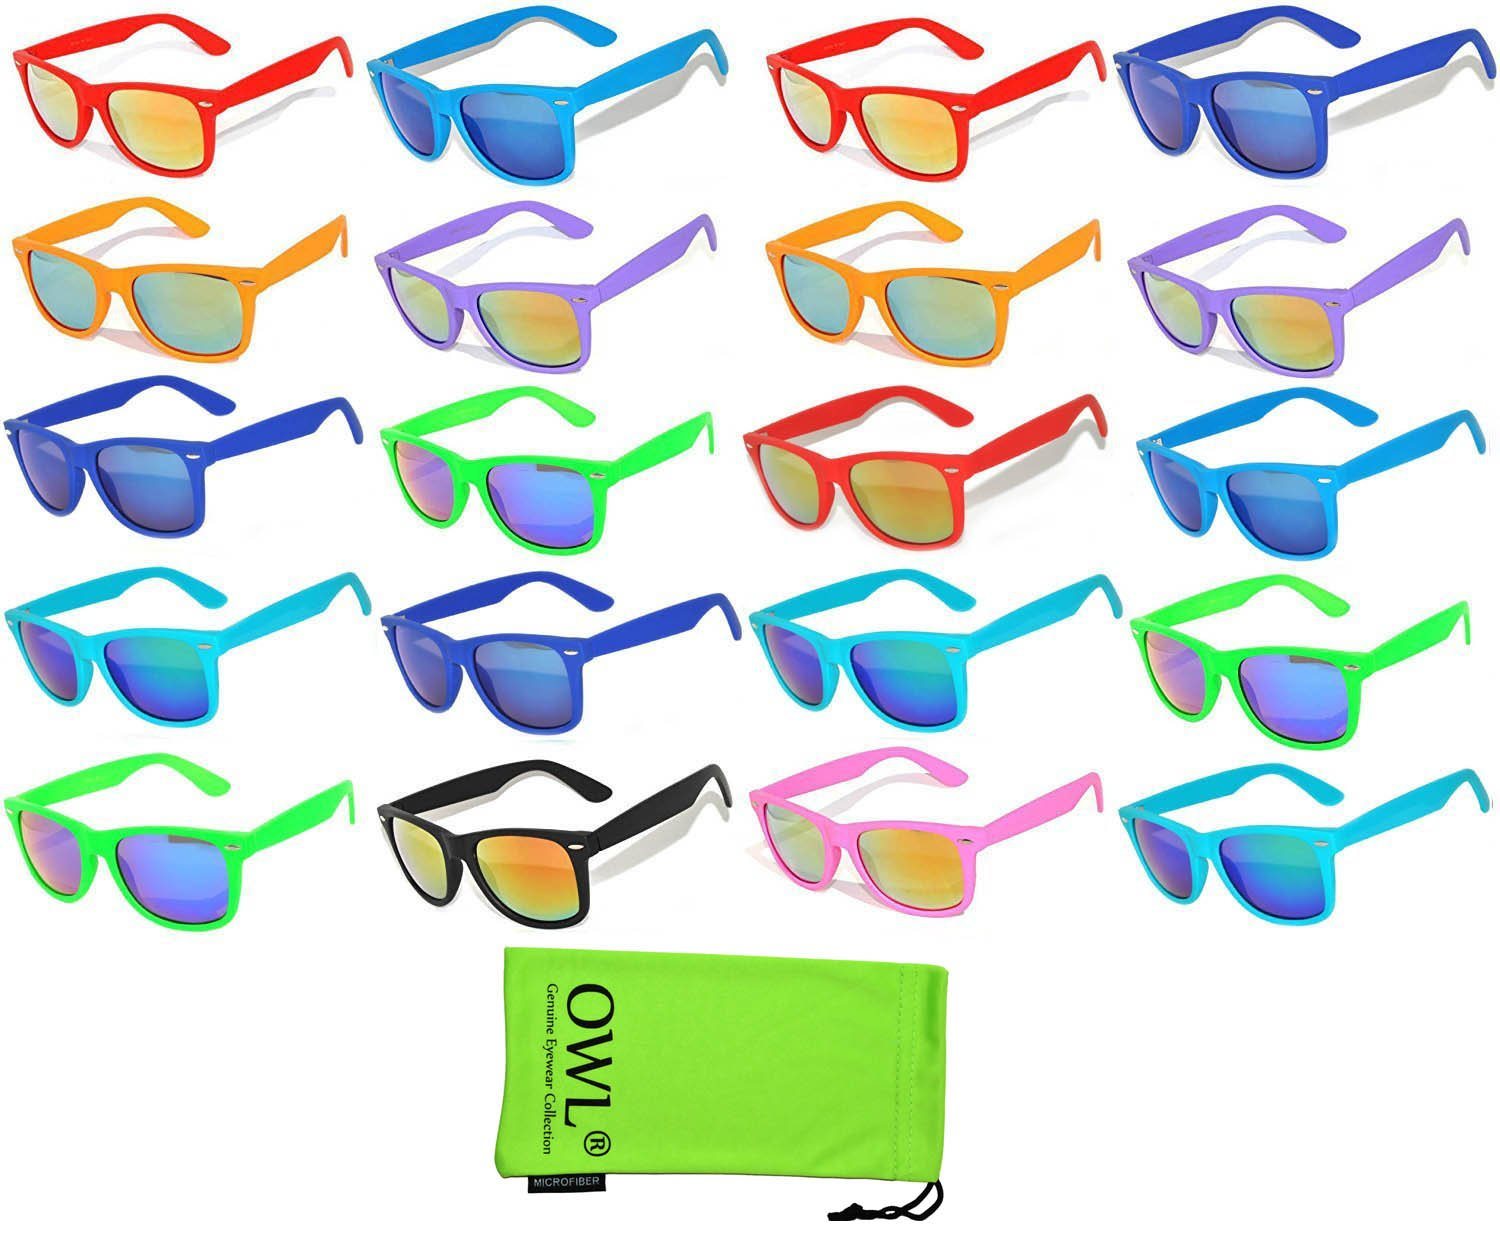 9a4642d49d3 Amazon.com  20 Pieces Per Case Wholesale Lot Glasses Assorted Colored Frame  Bulk Sunglasses Mirror Lens Party Glasses Supplier  Everything Else